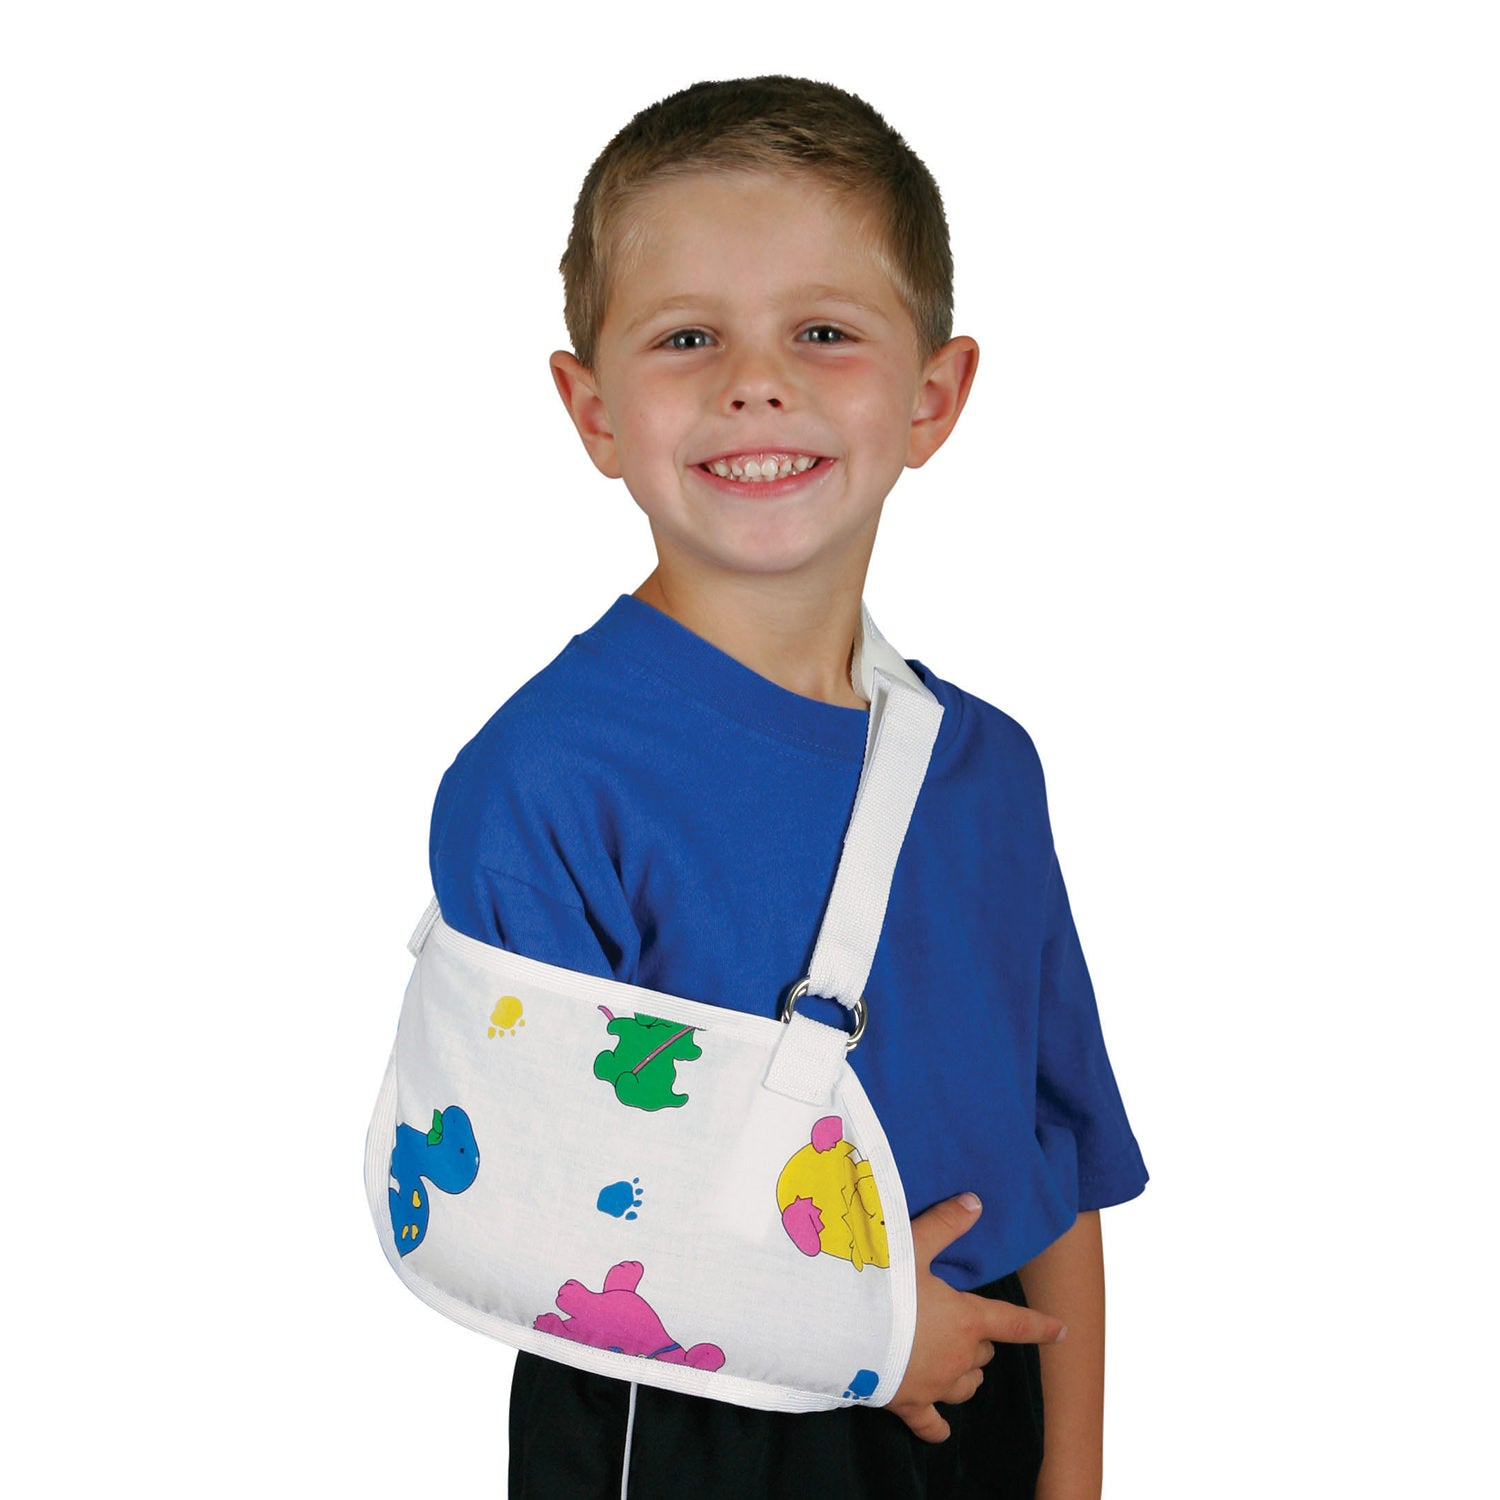 Medline Arm Sling (Pediatric & Adult)